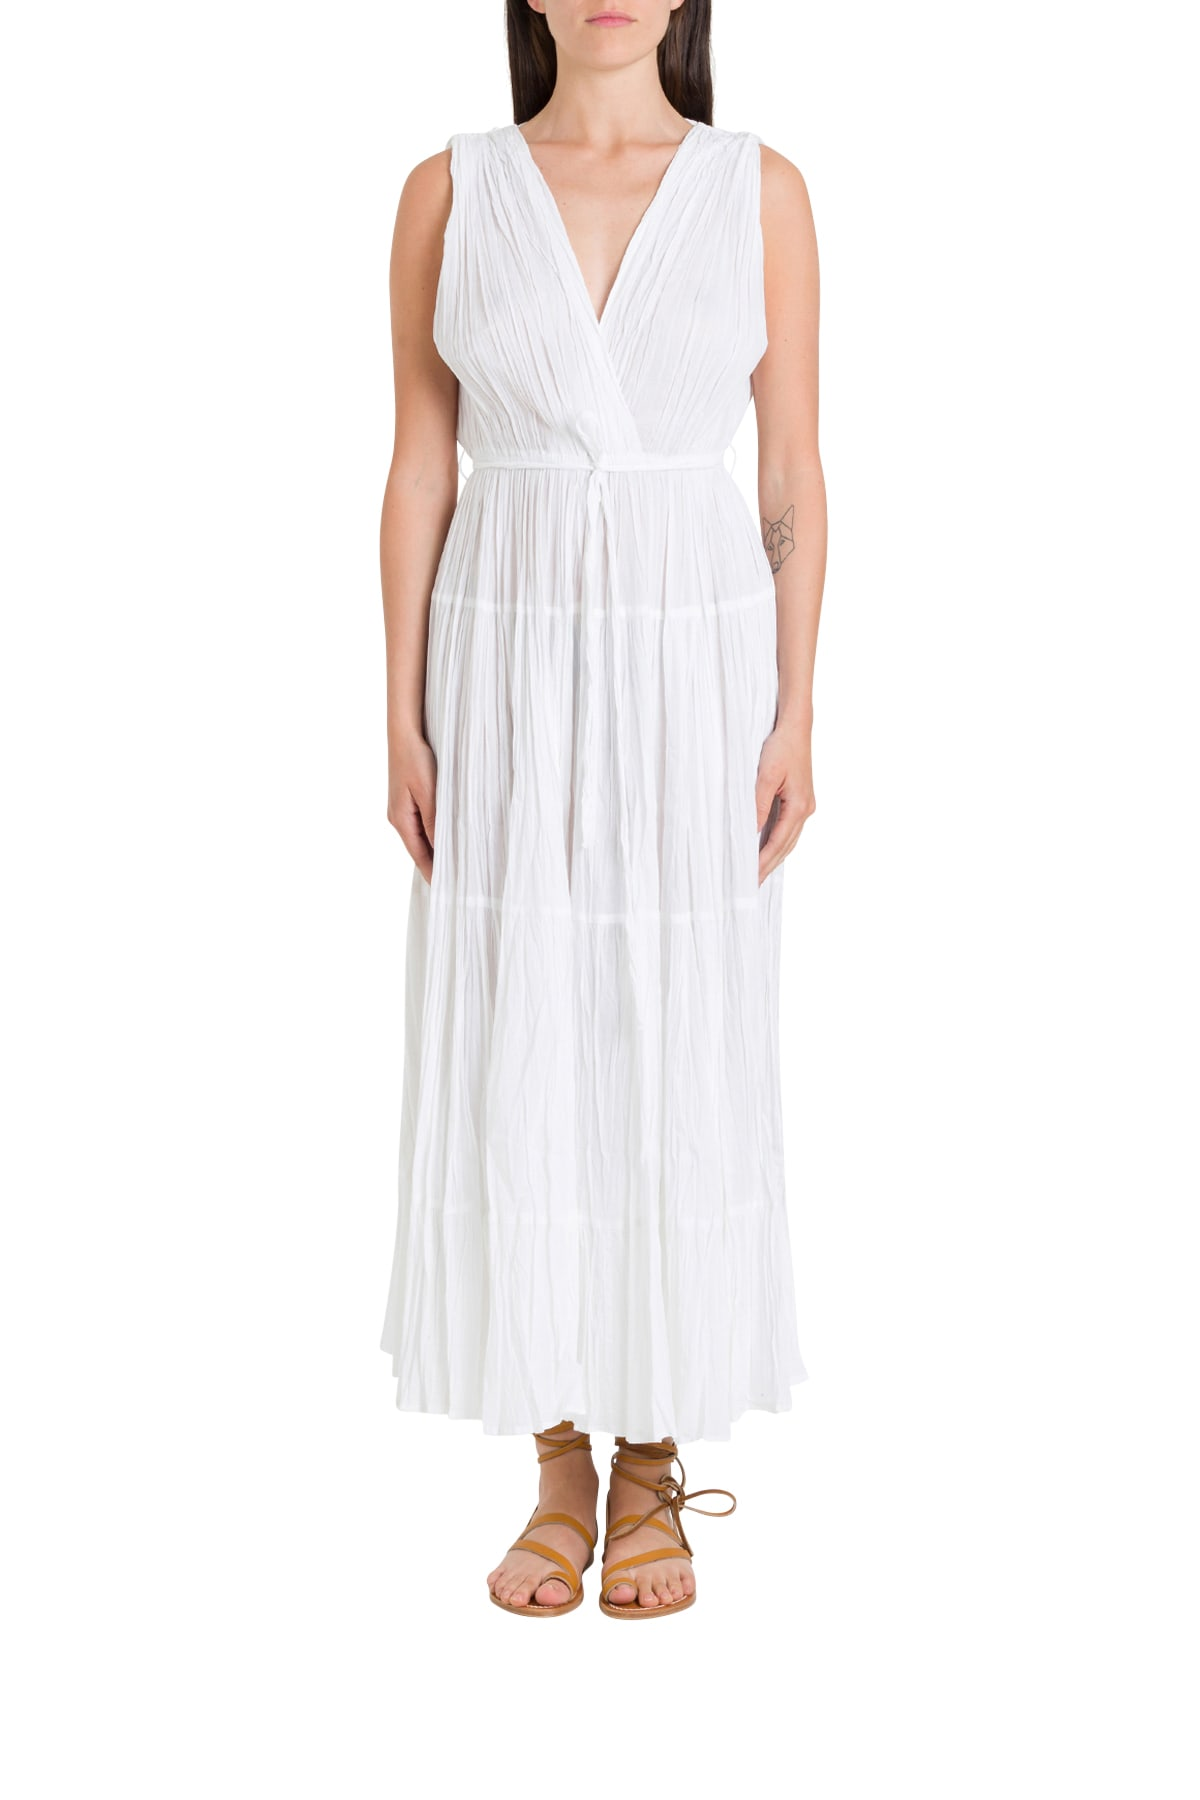 Buy Mes Demoiselles Pleated Cotton Dress online, shop Mes Demoiselles with free shipping